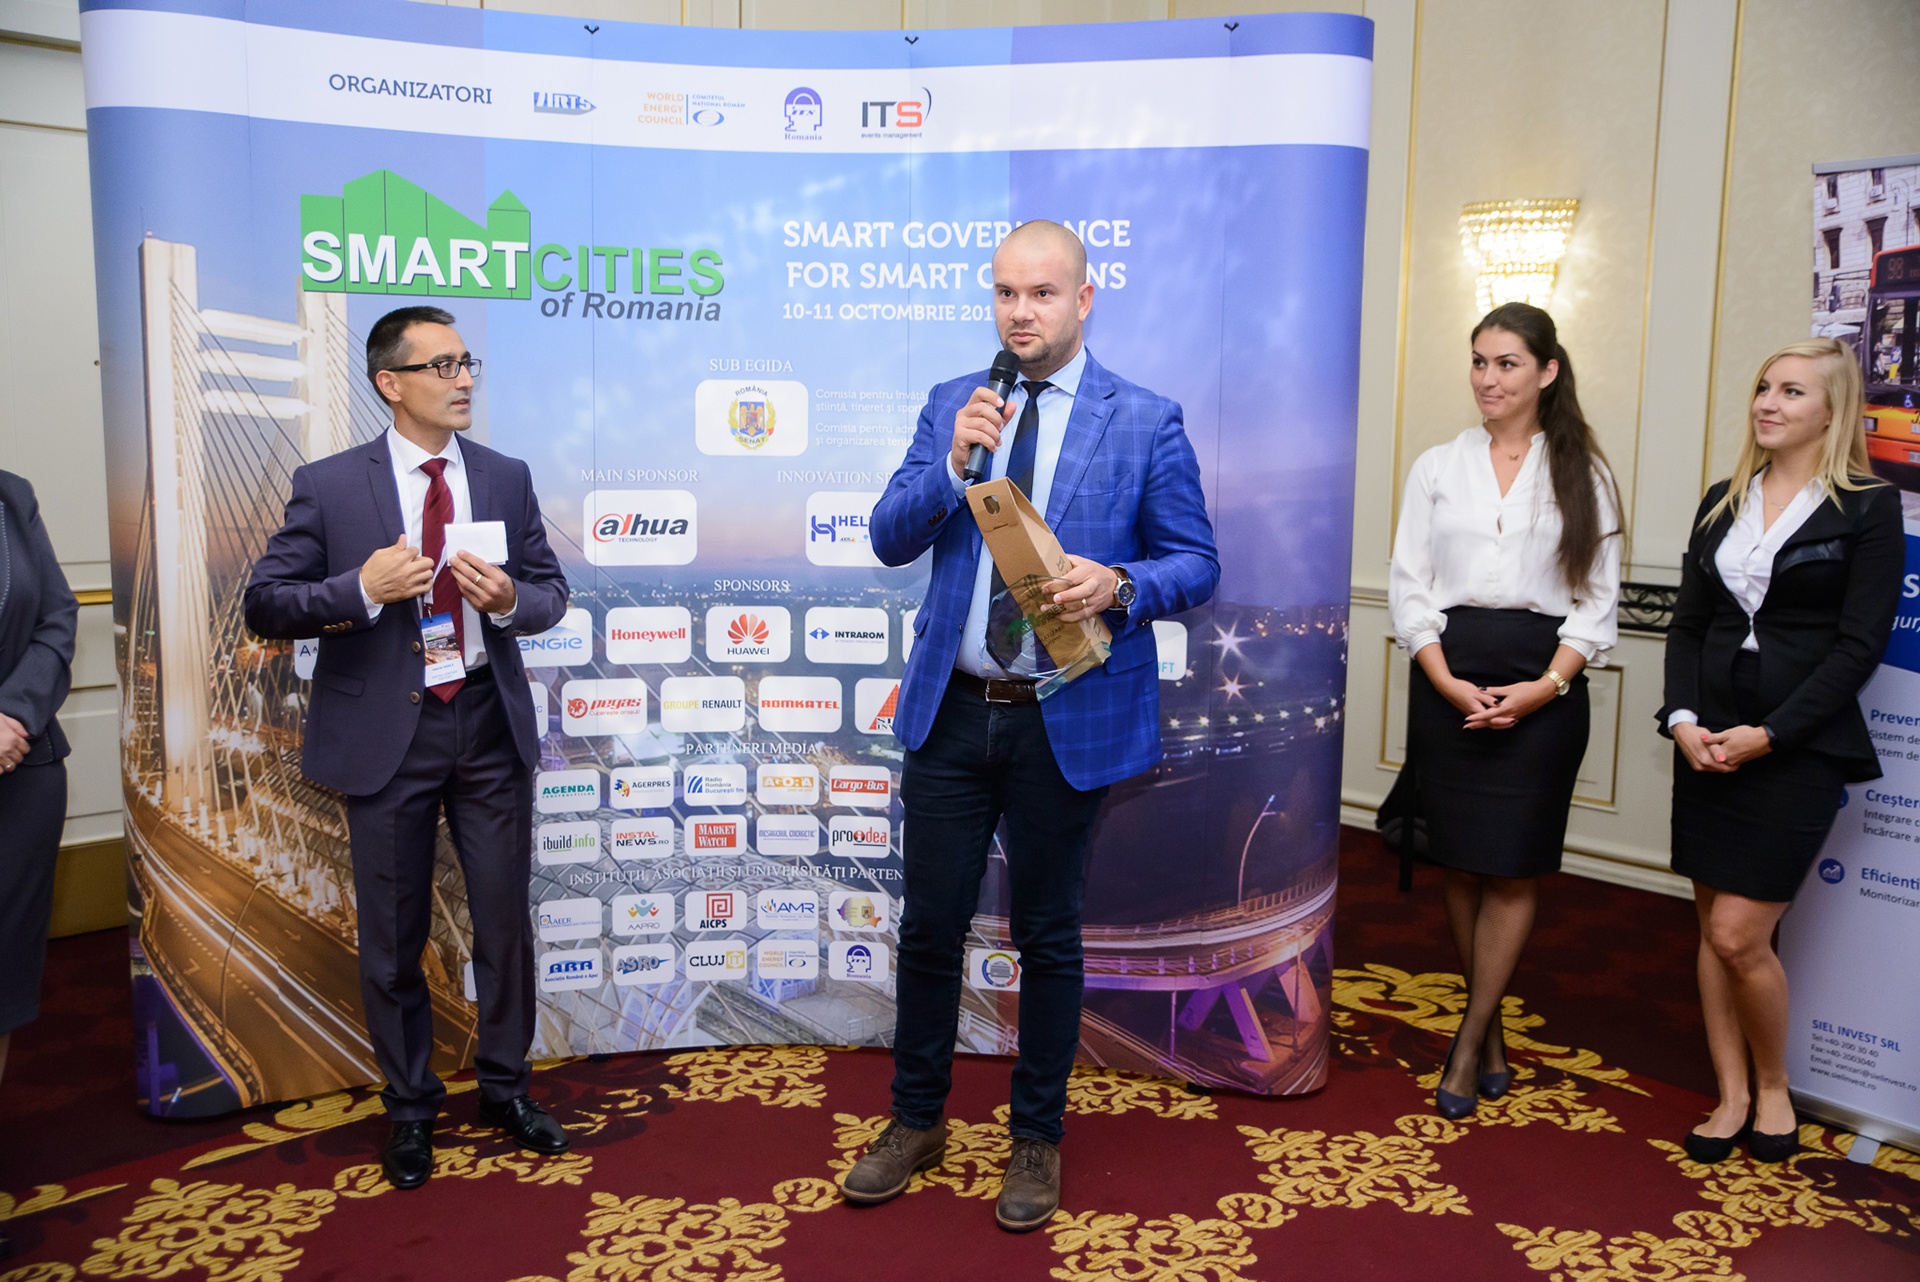 Smart-Cities-Of-Romania-2017---ITS-752